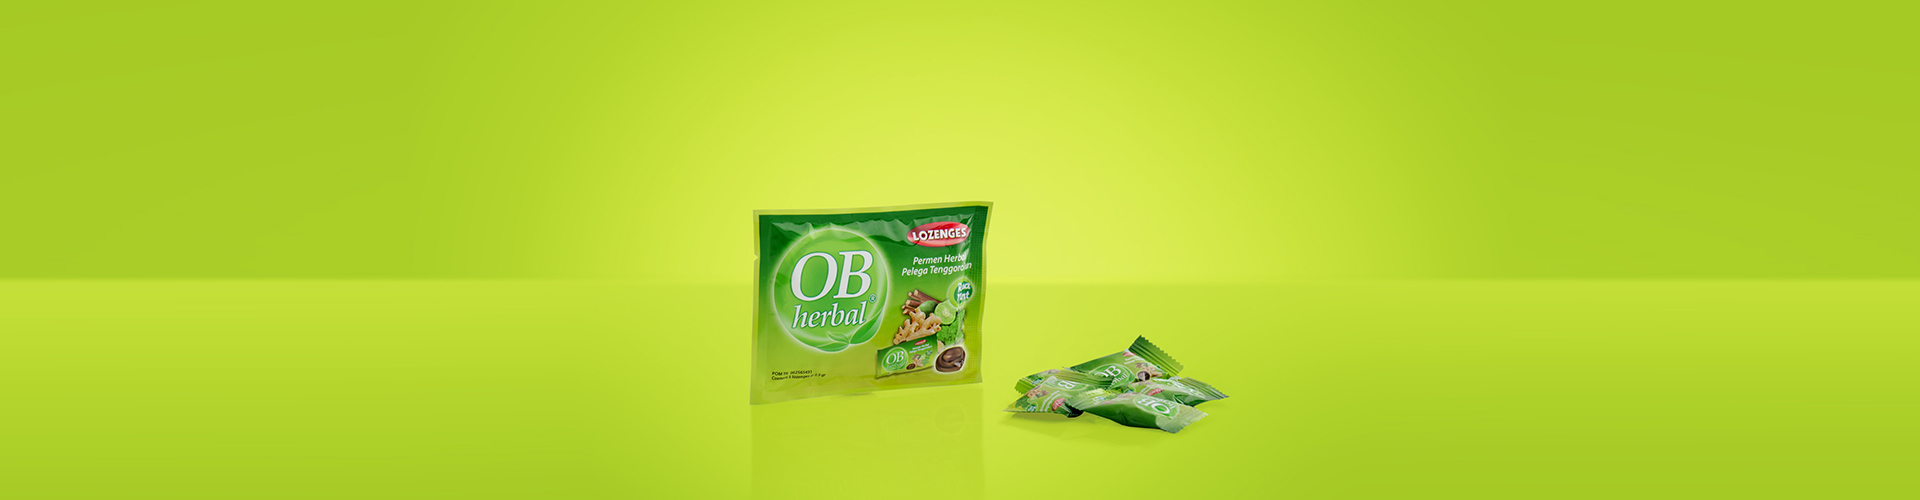 OB Herbal Candy